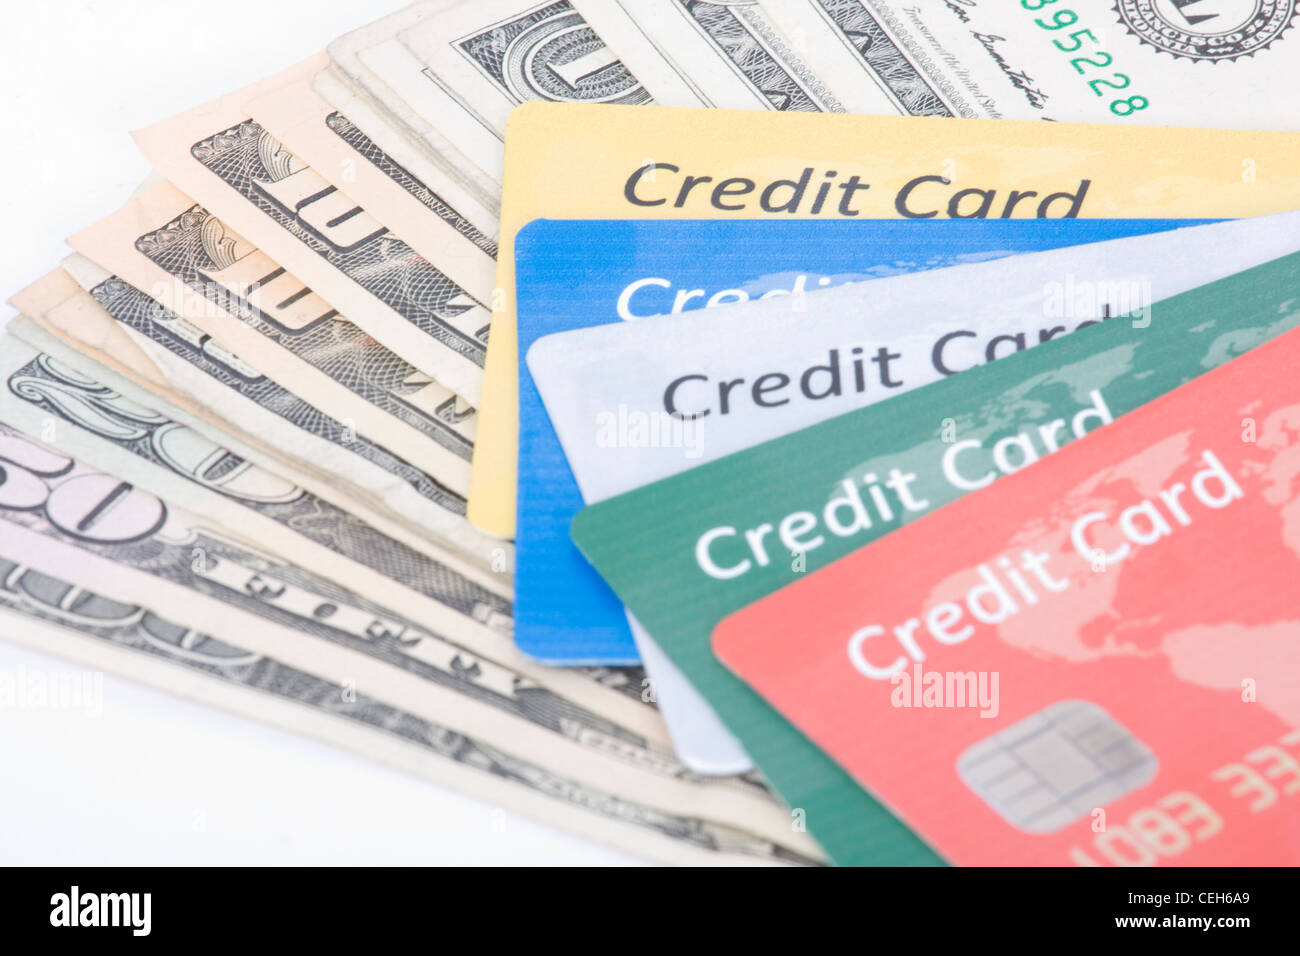 credit card and money - Stock Image